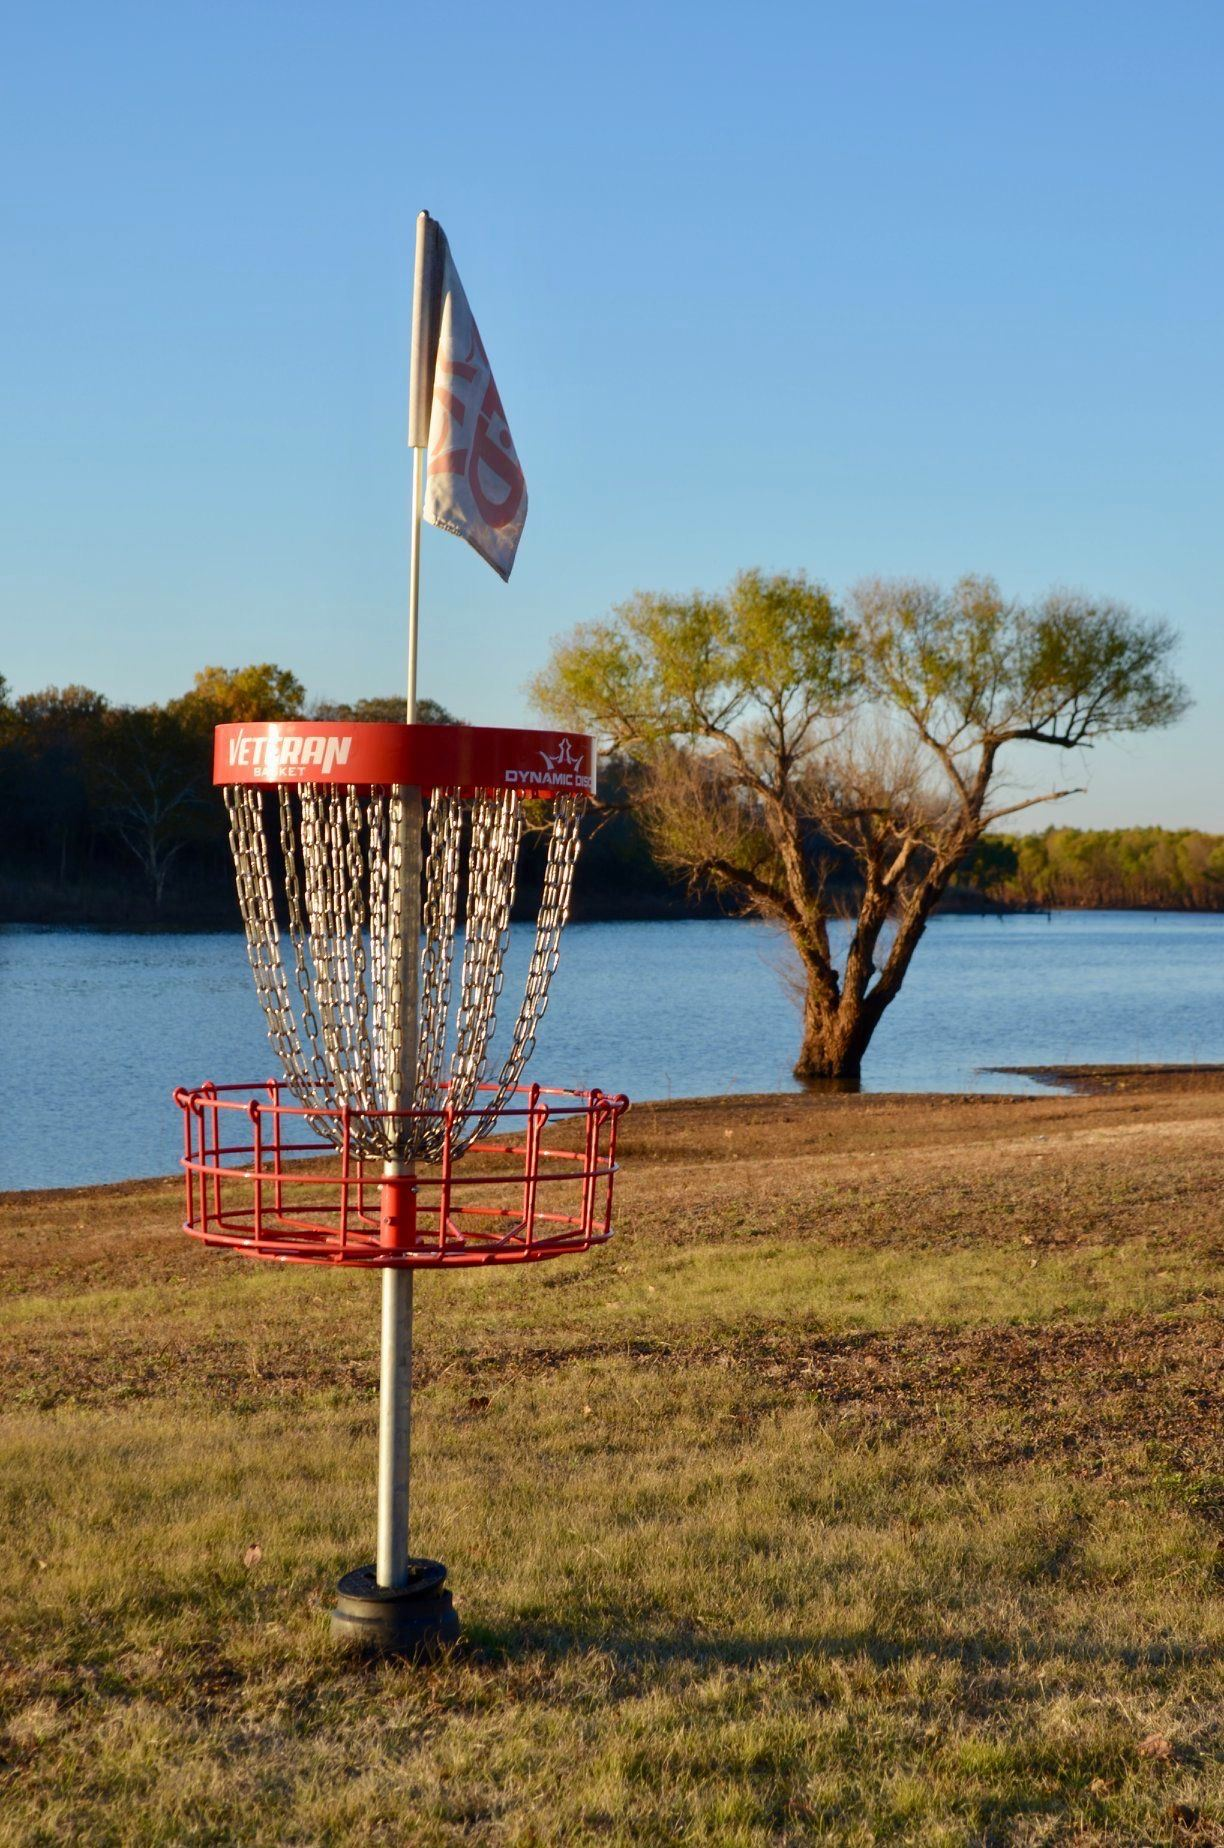 Feyodi disc golf